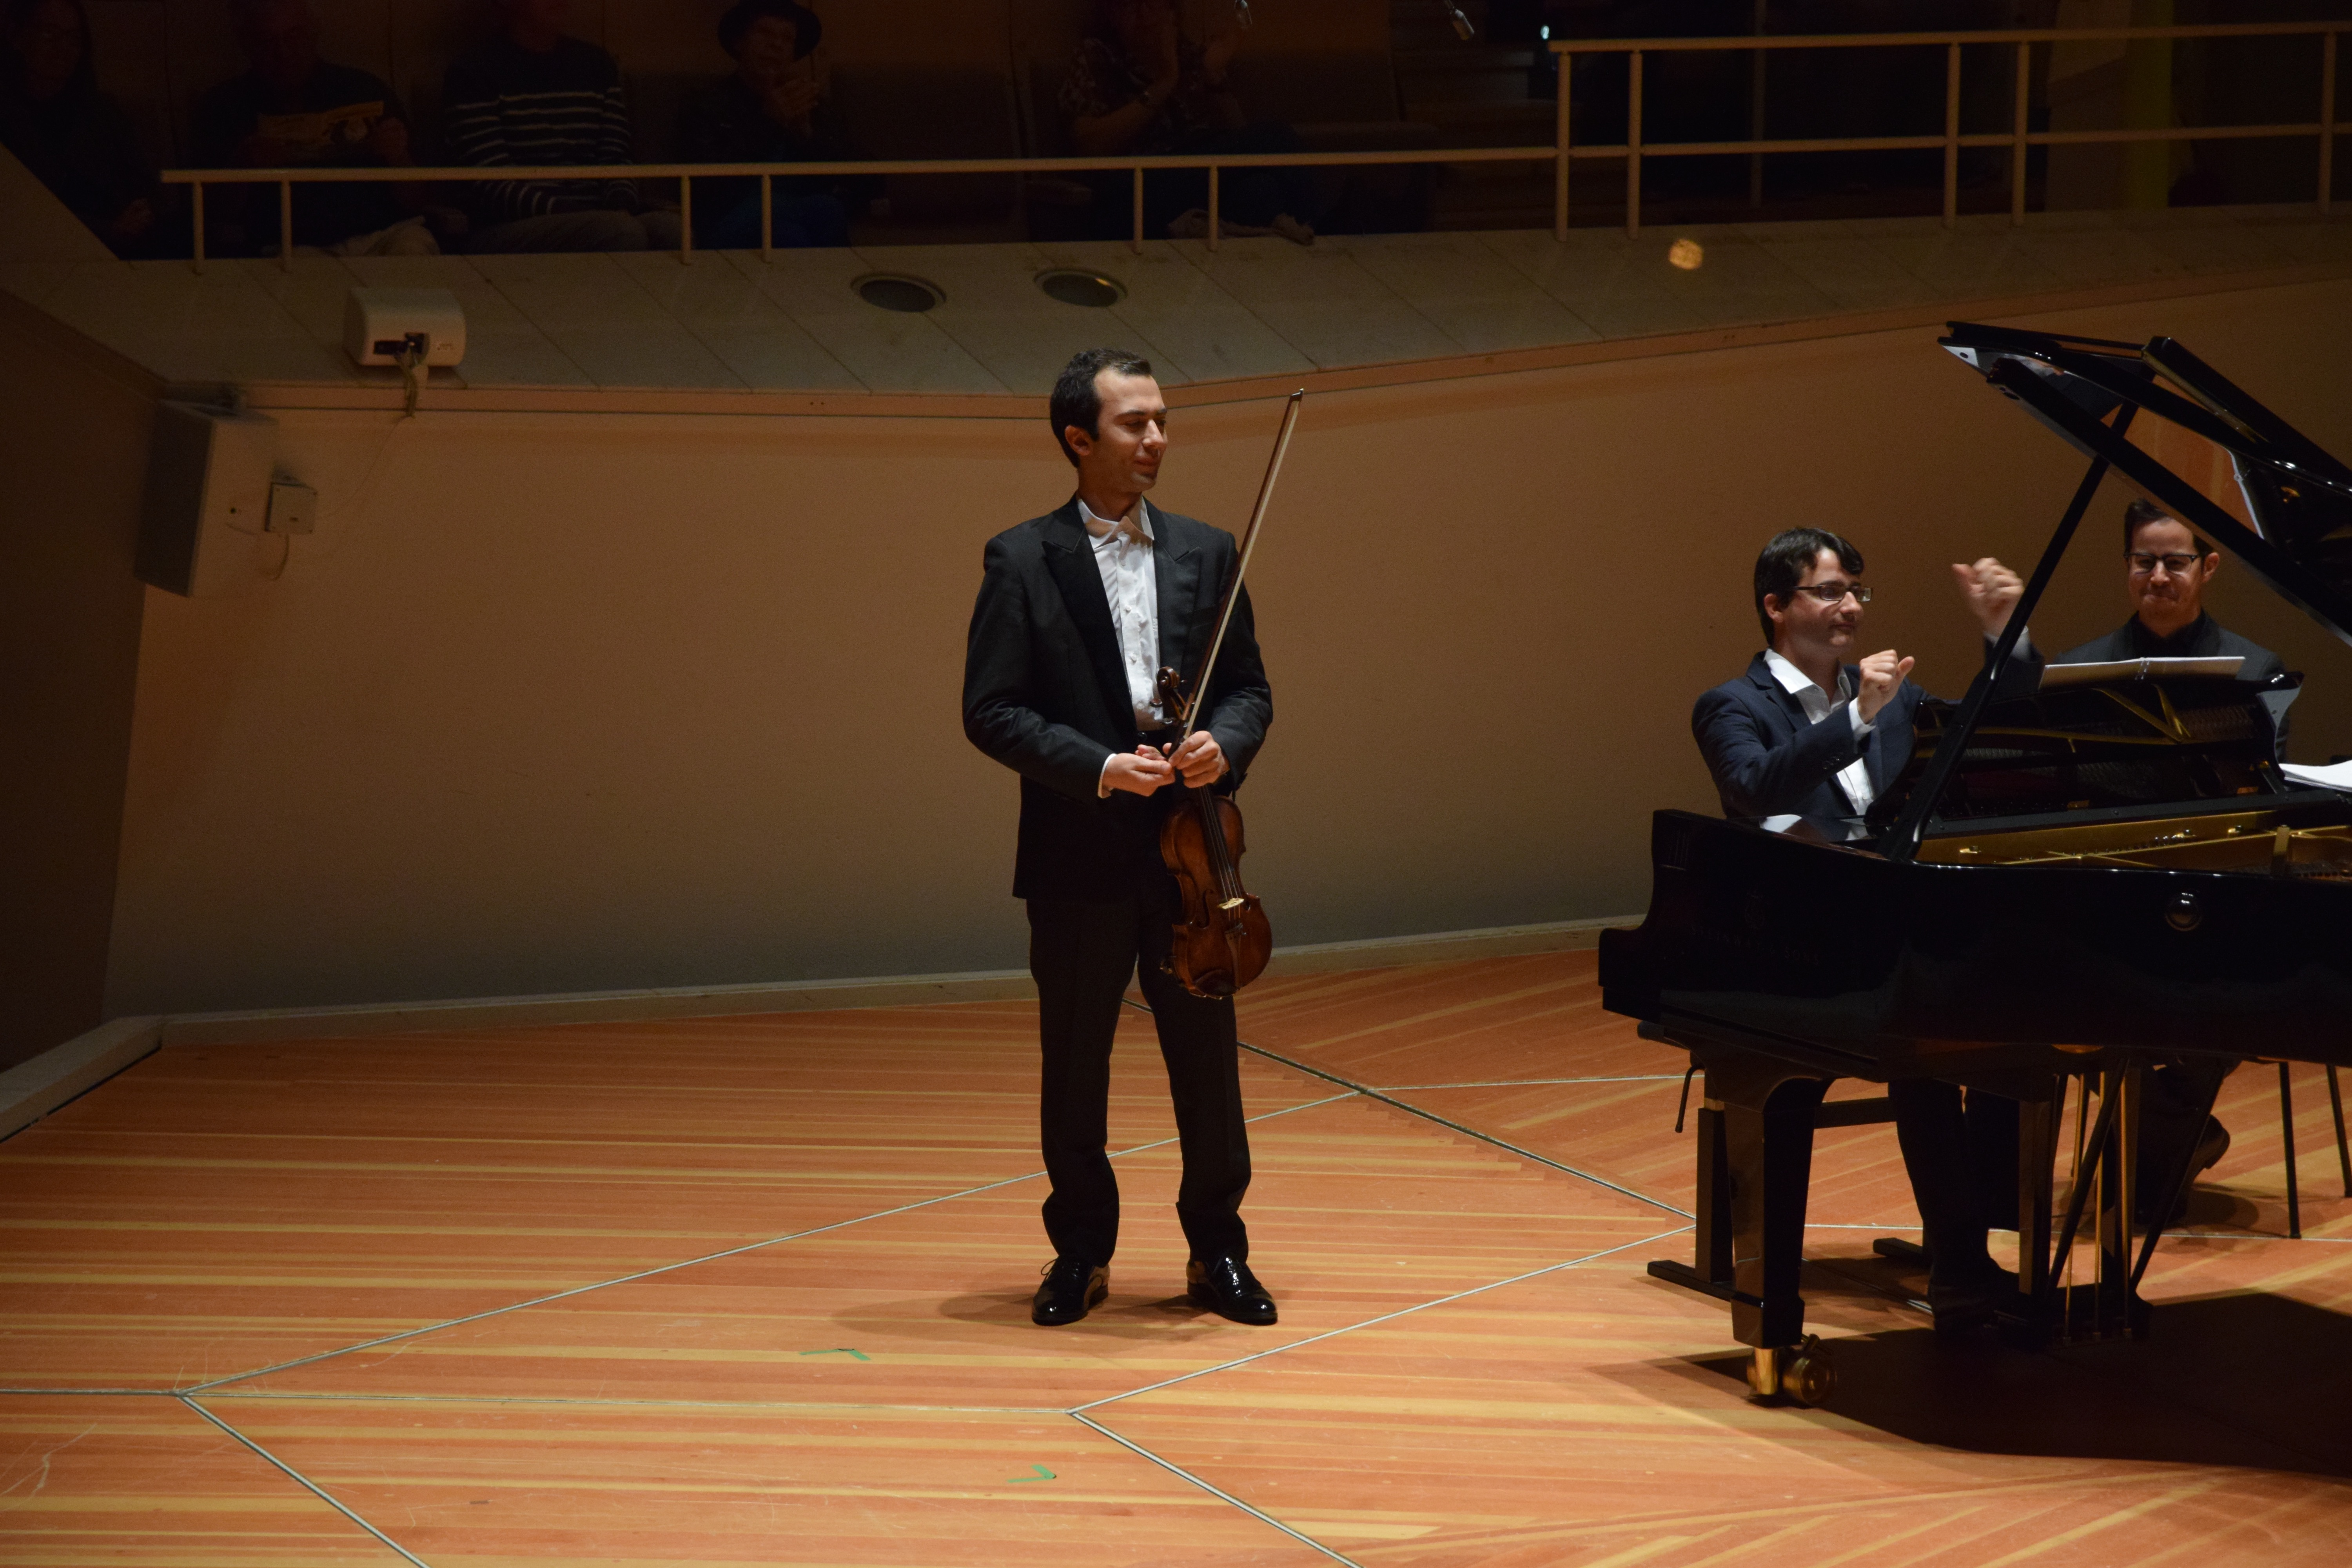 berliner music competition 4